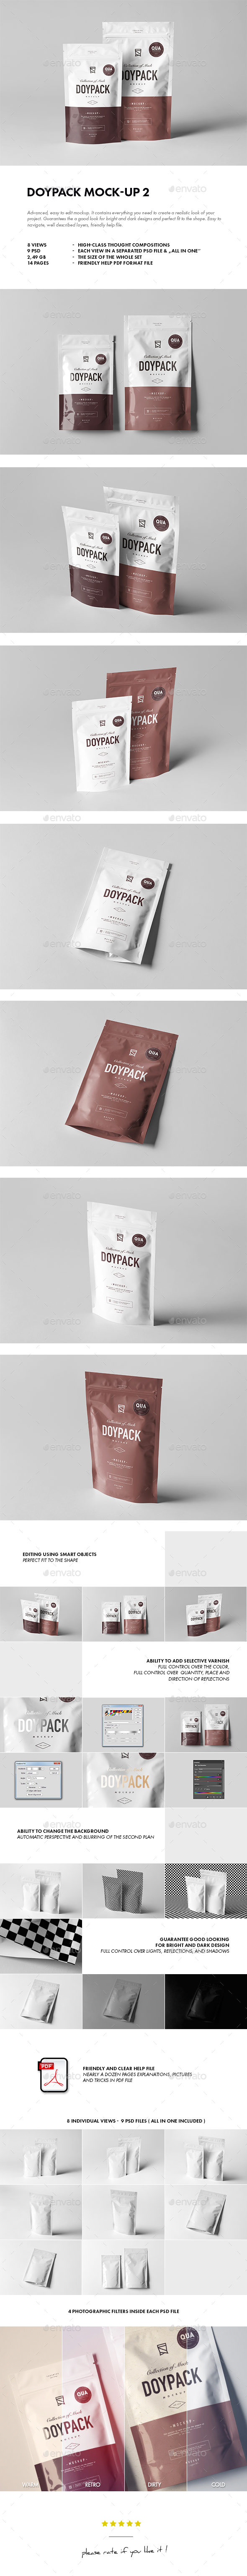 Doypack Mock-up 2 - Miscellaneous Packaging